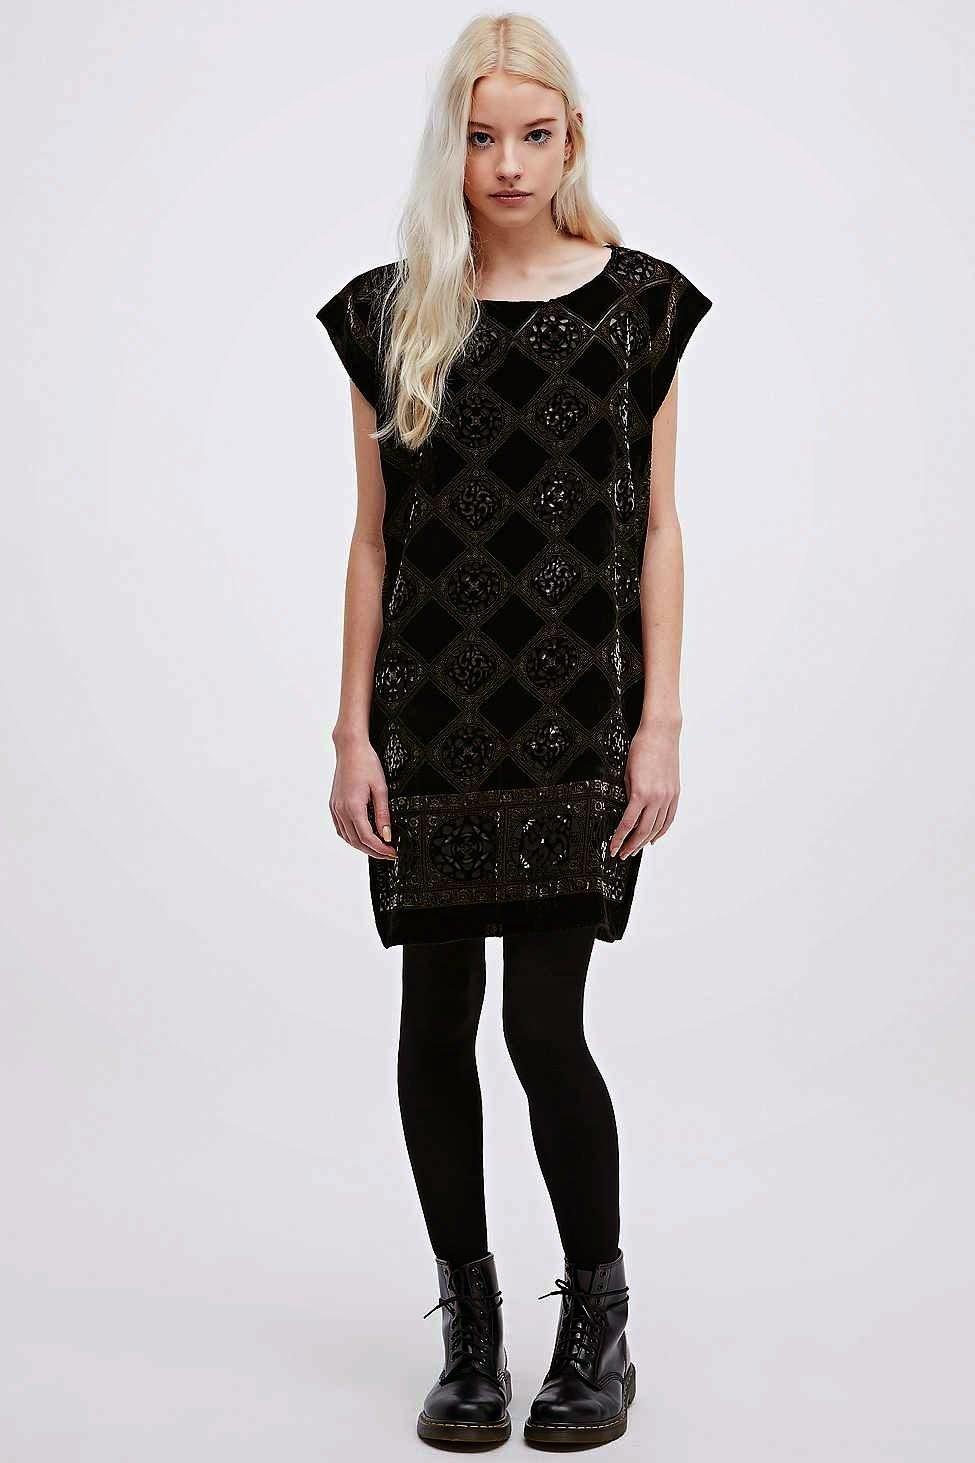 urban outfitters black and gold dress,